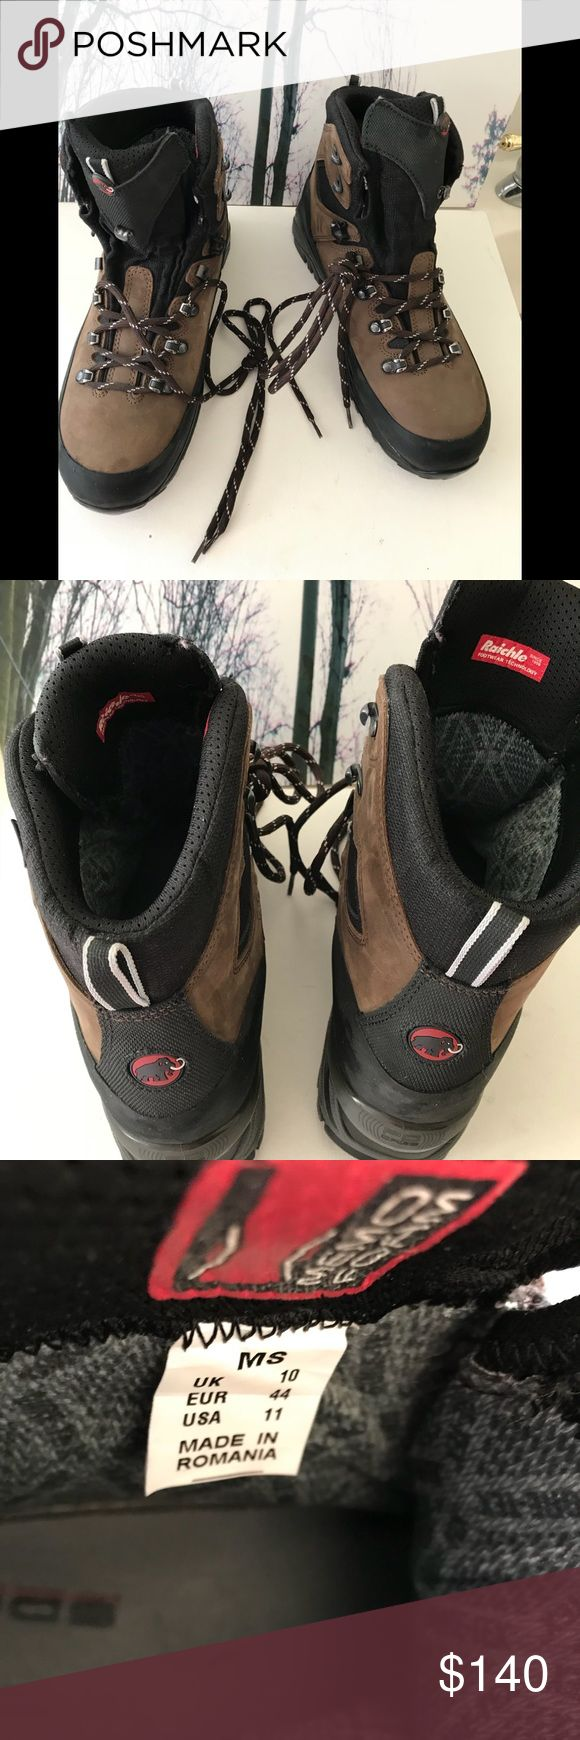 Mammoth Boots NWOT- Mammut Raichle Goryex Boots with Vibram Sole In excellent Condition. New Pair Size:11 Mammut Shoes Boots